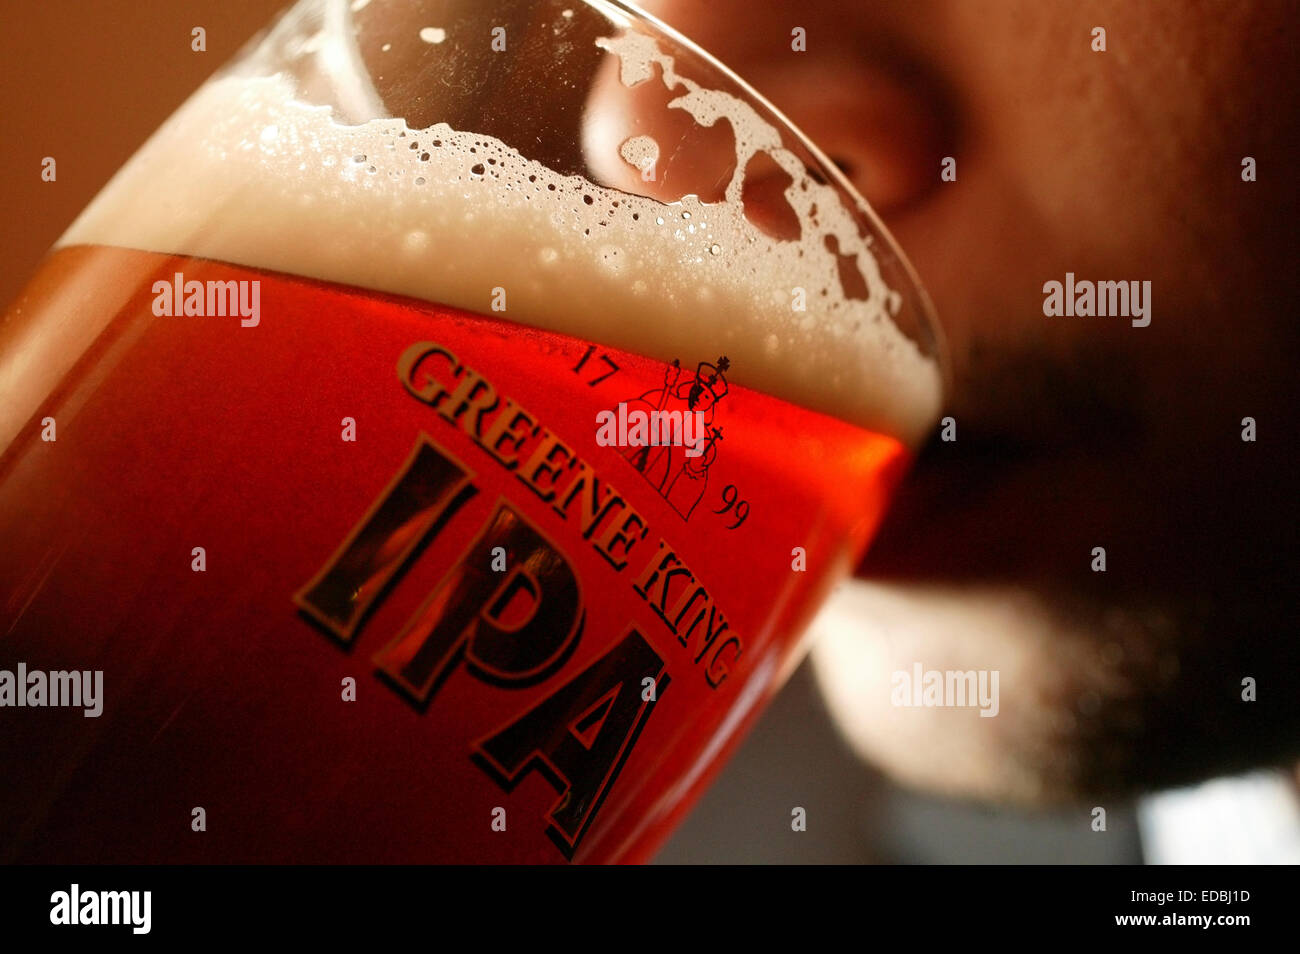 Picture shows a pint of Greene King IPA being served at a London pub. - Stock Image